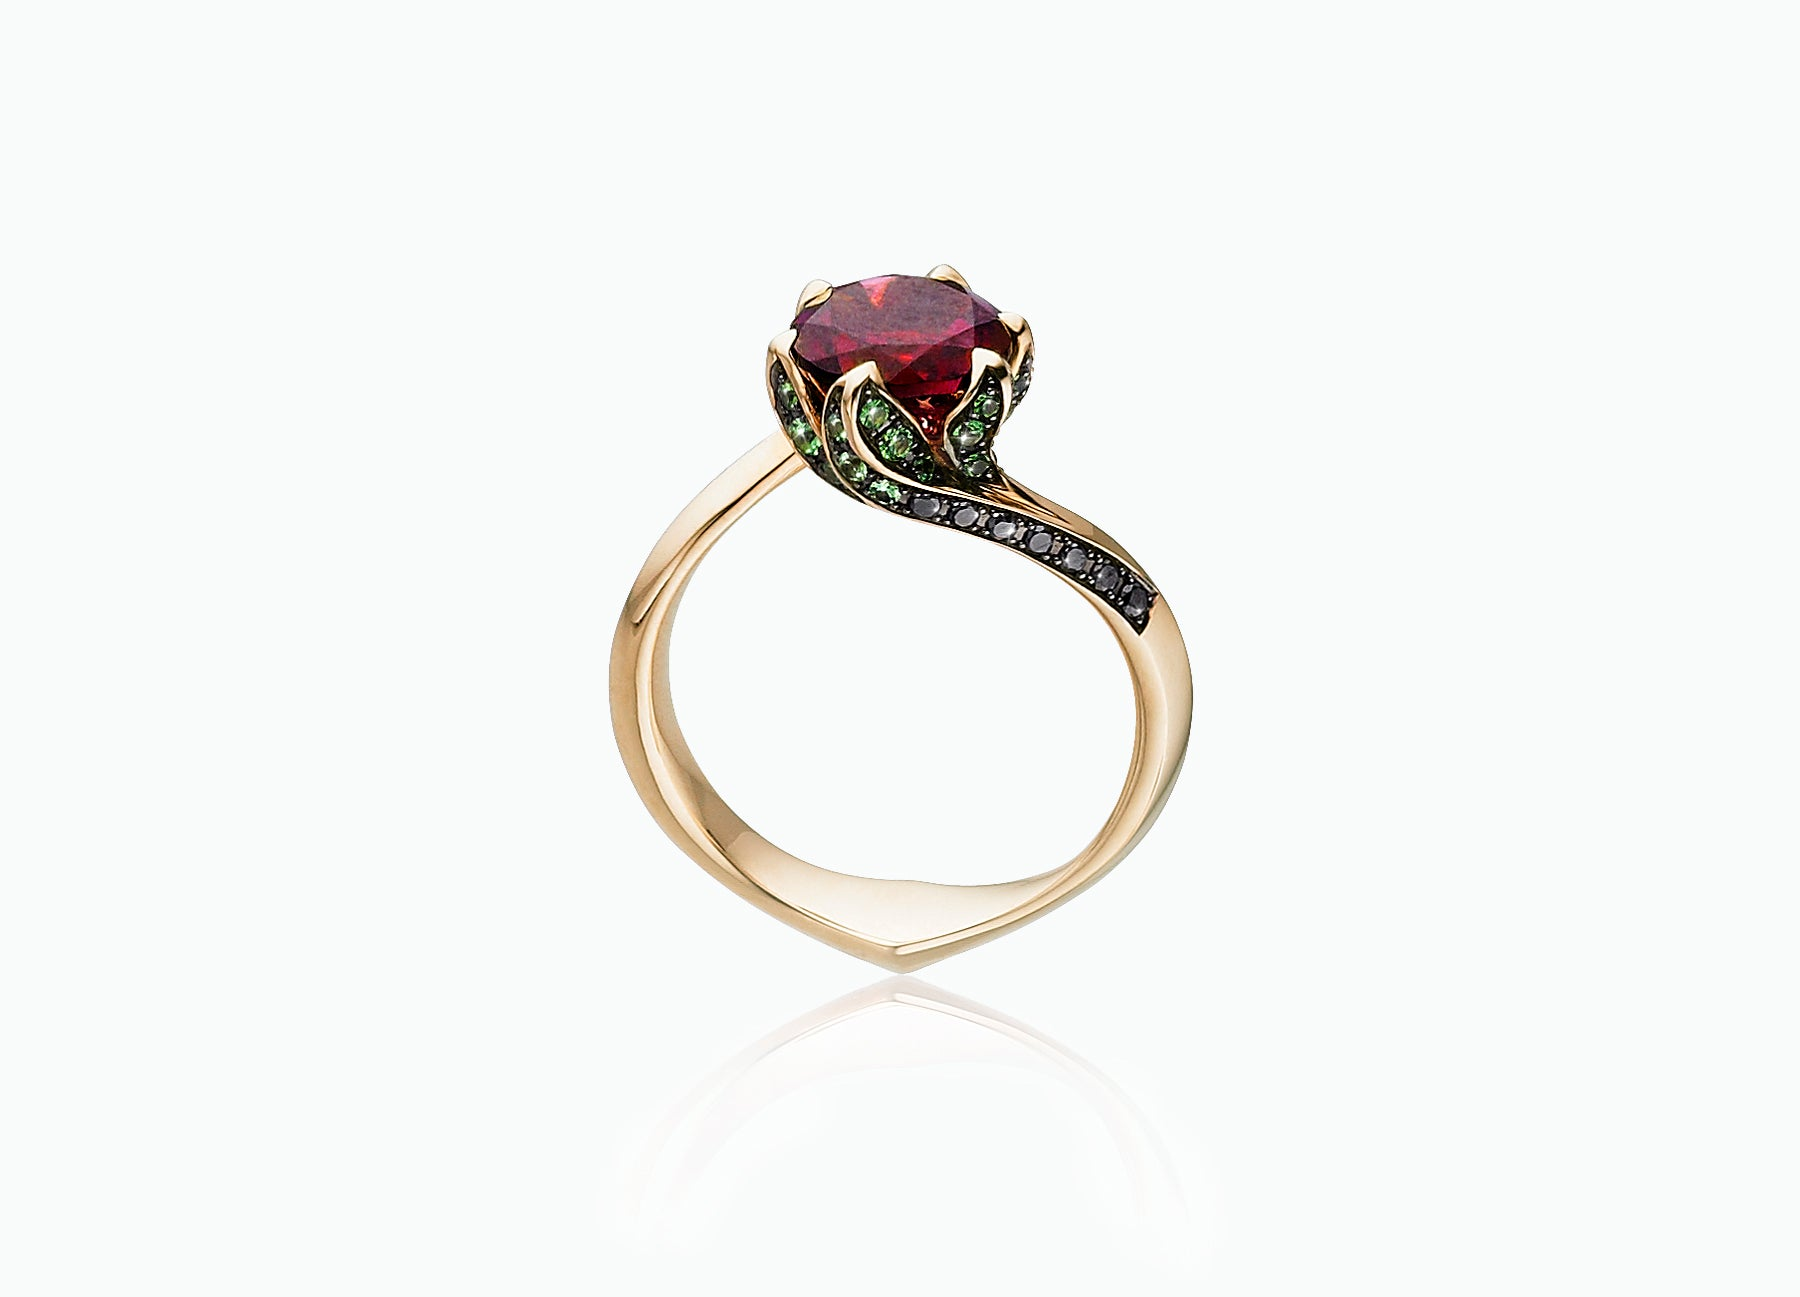 Lily Pad engagement ring in 18K yellow gold set with a rubellite tourmaline centre stone side view